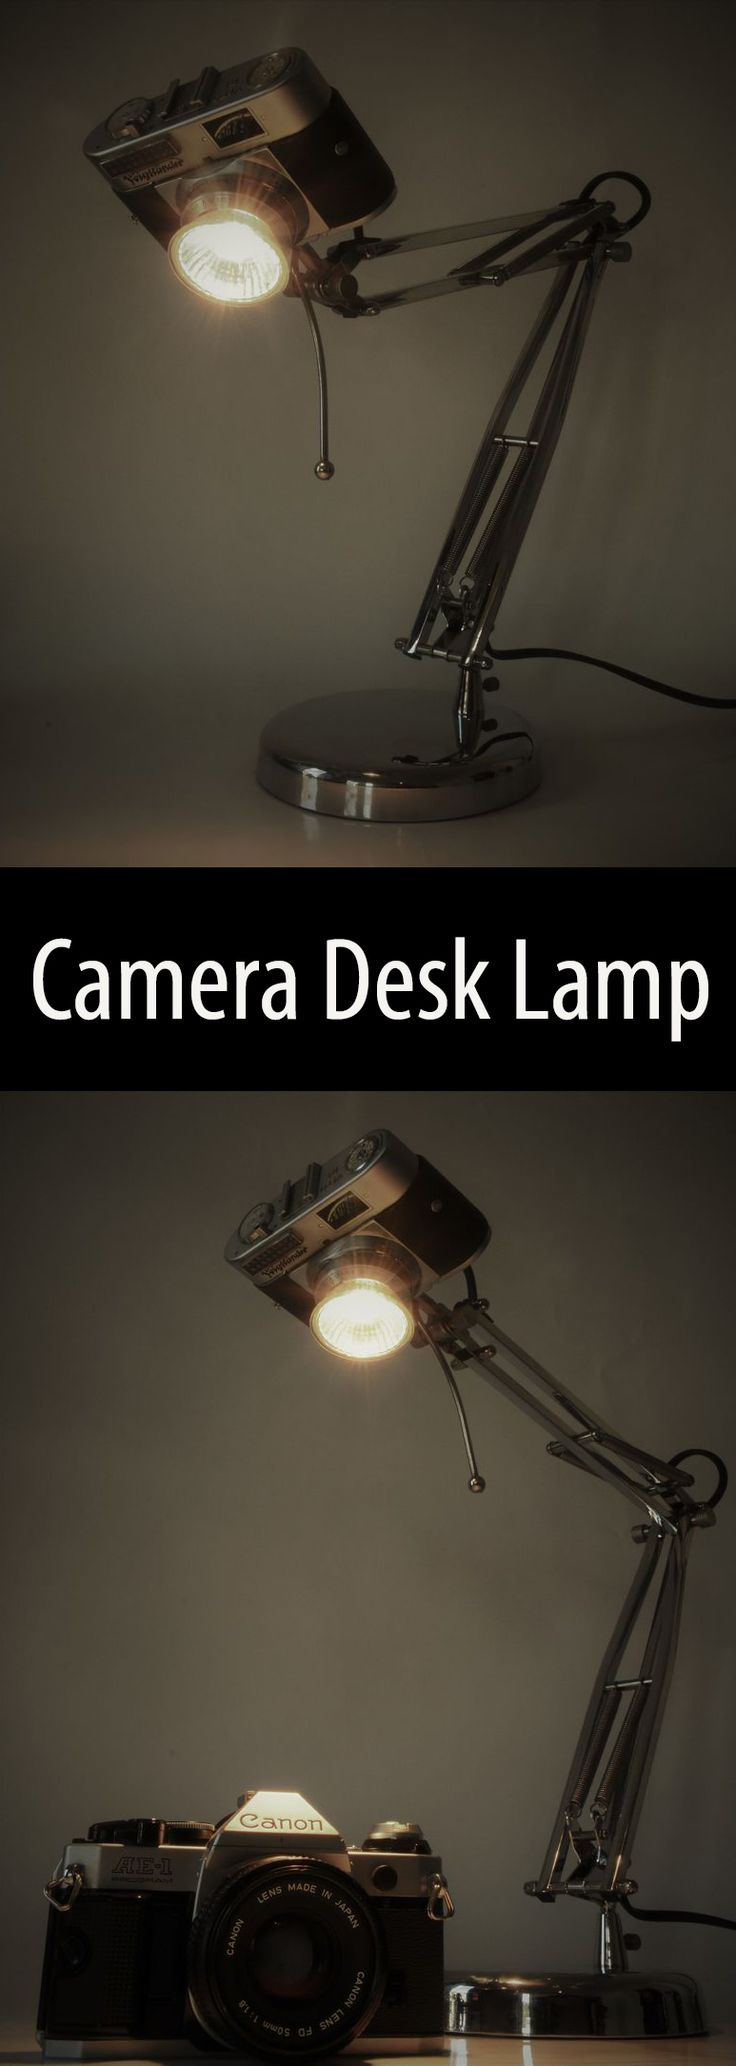 Upcycle and old (non-functional) film camera into a stylish desk lamp.